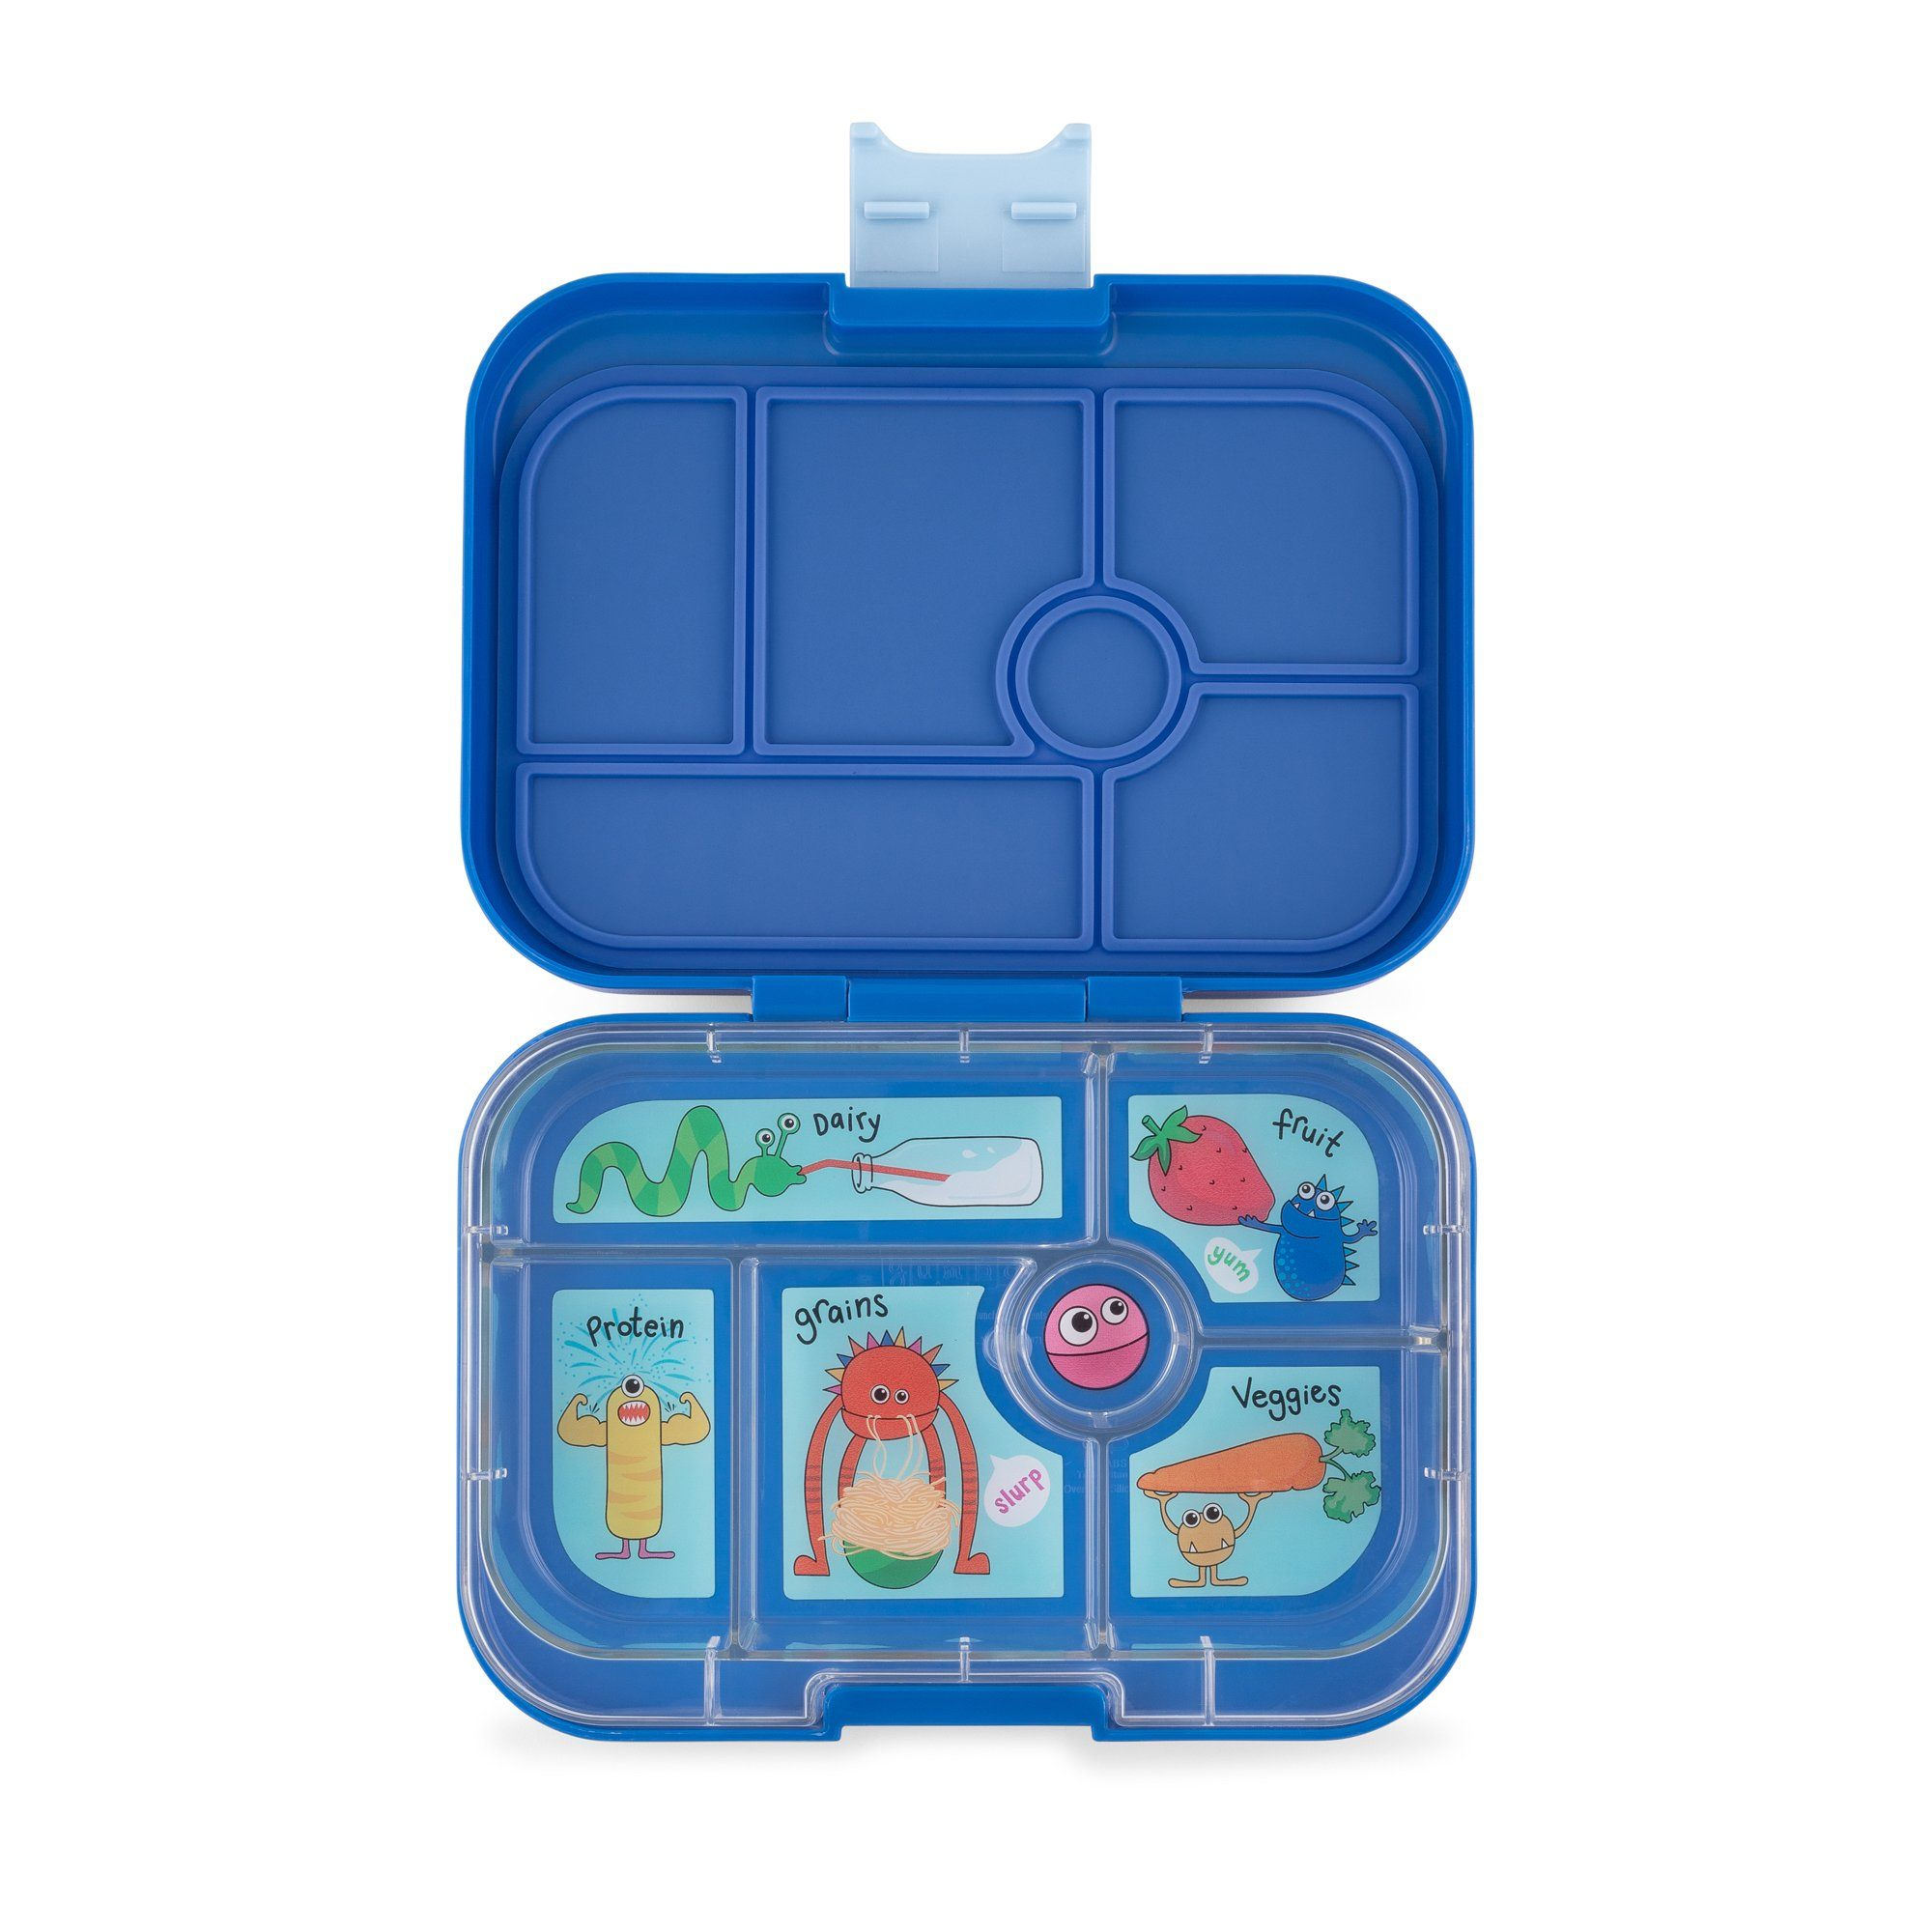 Yumbox - Original / 6 Compartment - True Blue Meal Time Yumbox